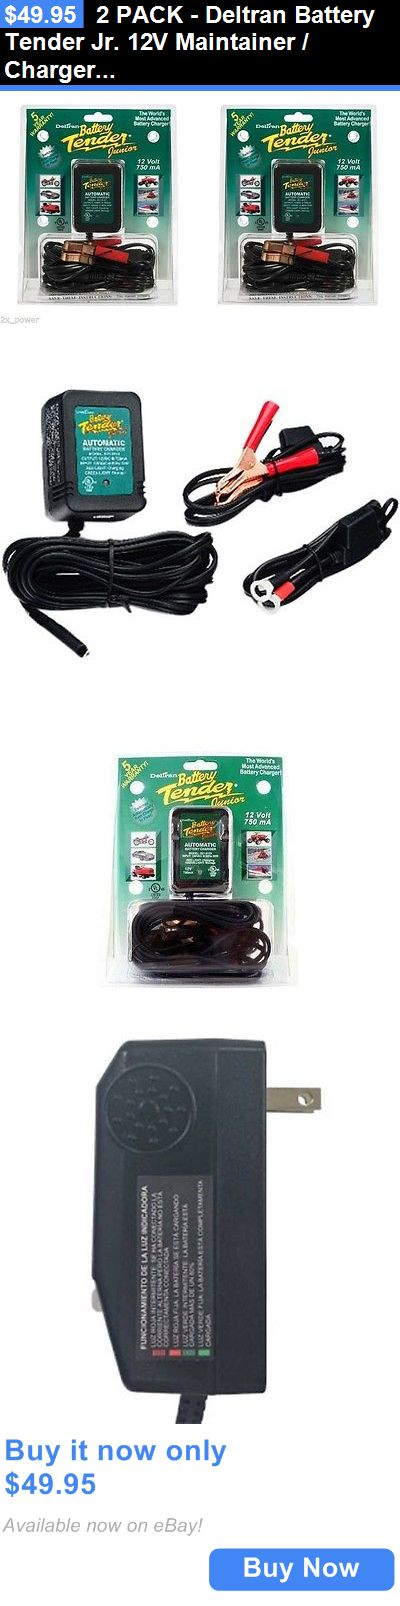 Motors Parts And Accessories: 2 Pack - Deltran Battery Tender Jr. 12V Maintainer / Charger Tender Jr BUY IT NOW ONLY: $49.95